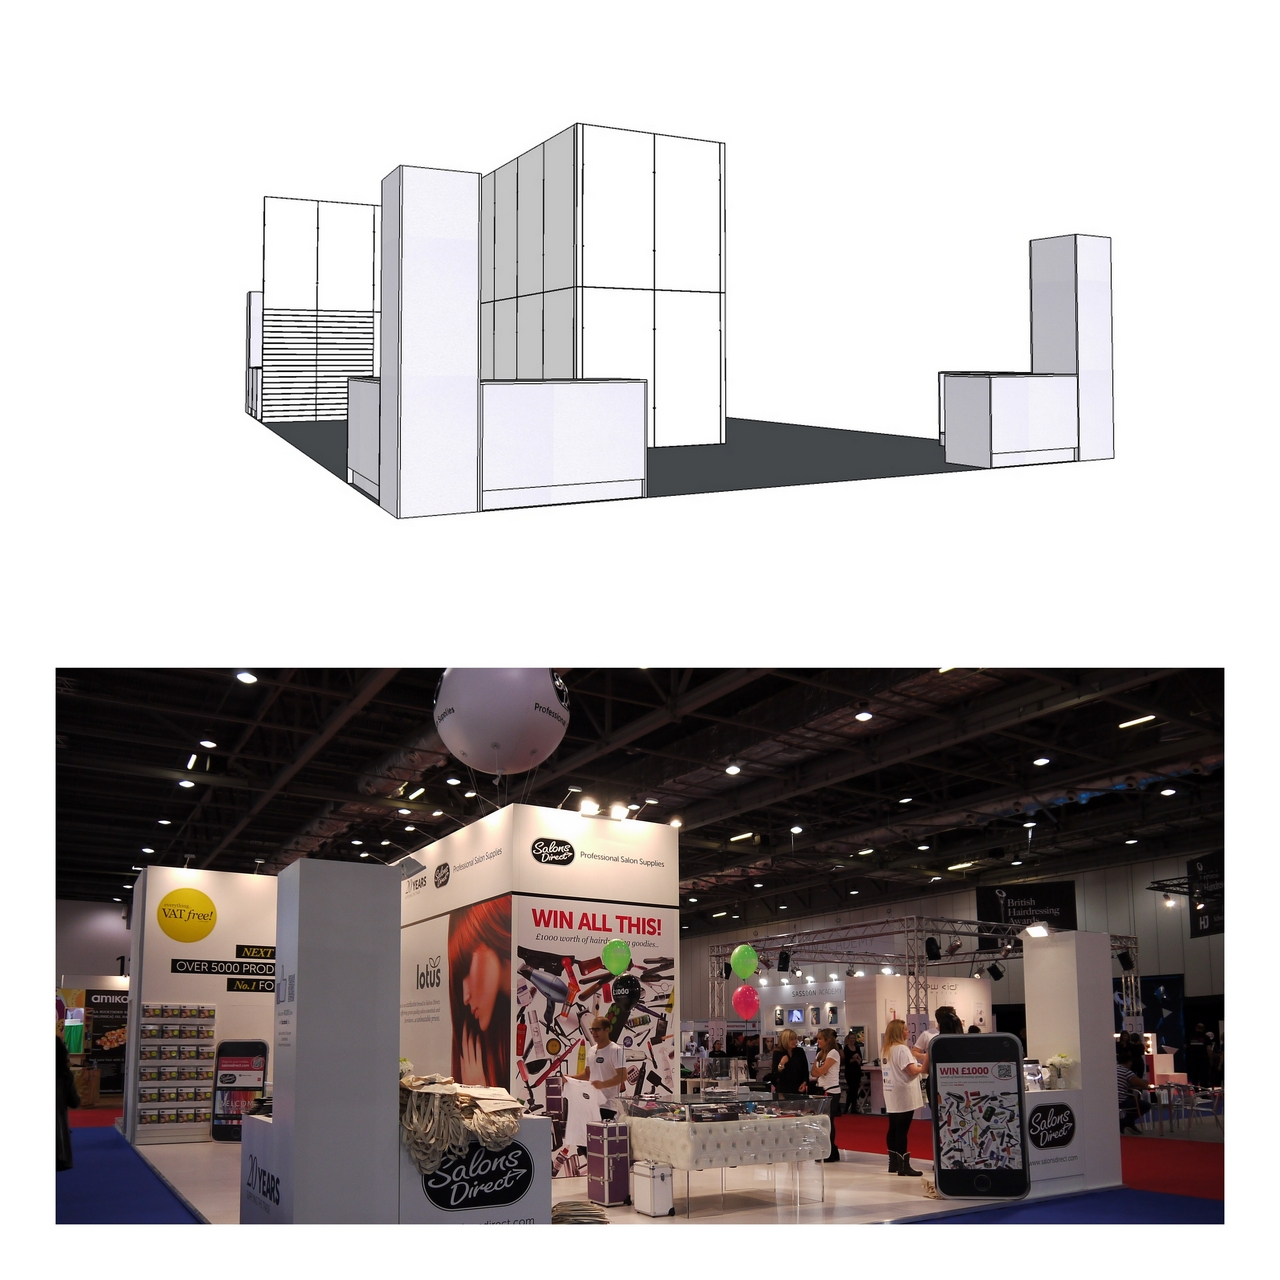 exhibition C Wall panels